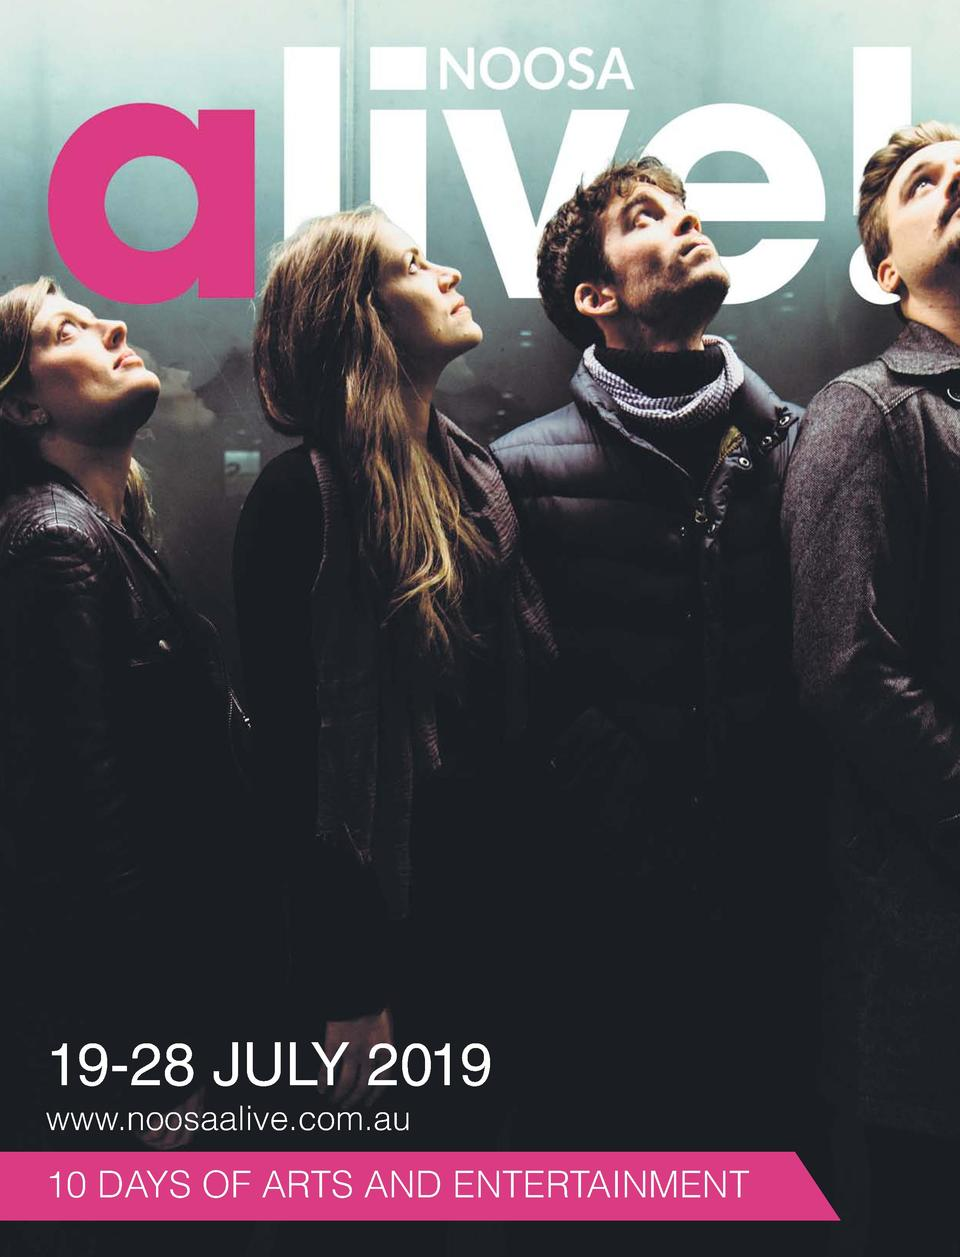 19-28 JULY 2019 www.noosaalive.com.au  10 days of arts and entertainment